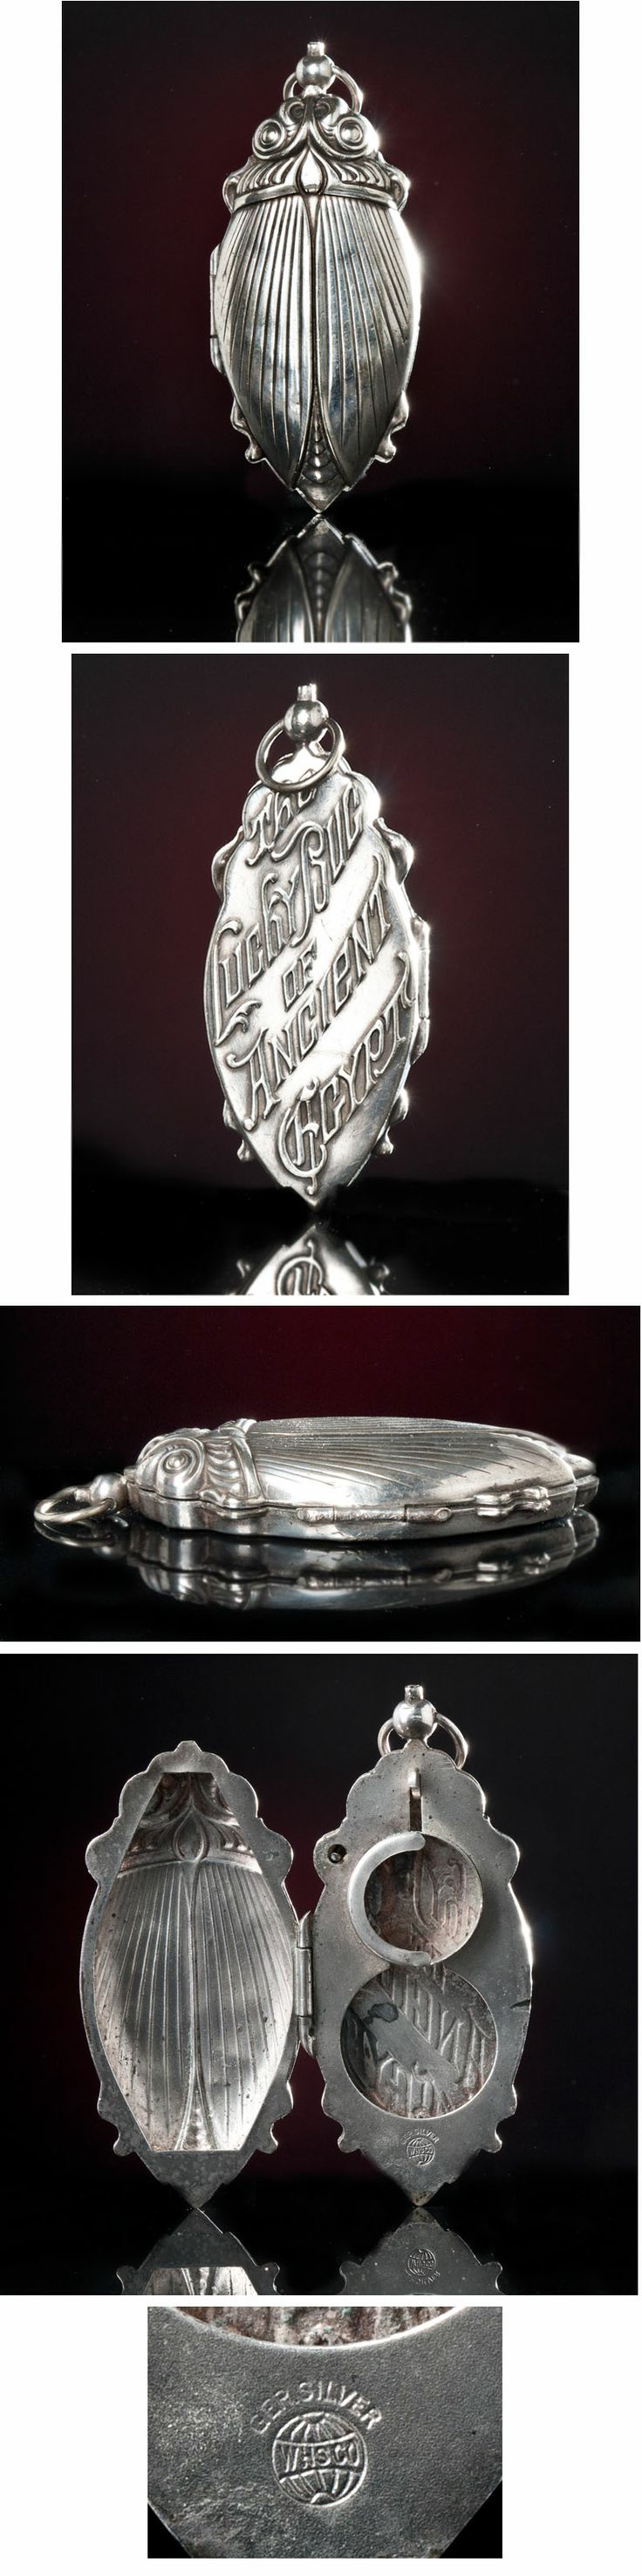 1 Rare Lucky Bug of Ancient Egypt WHS Co 1920s Big Scarab Coin Purse German Silver